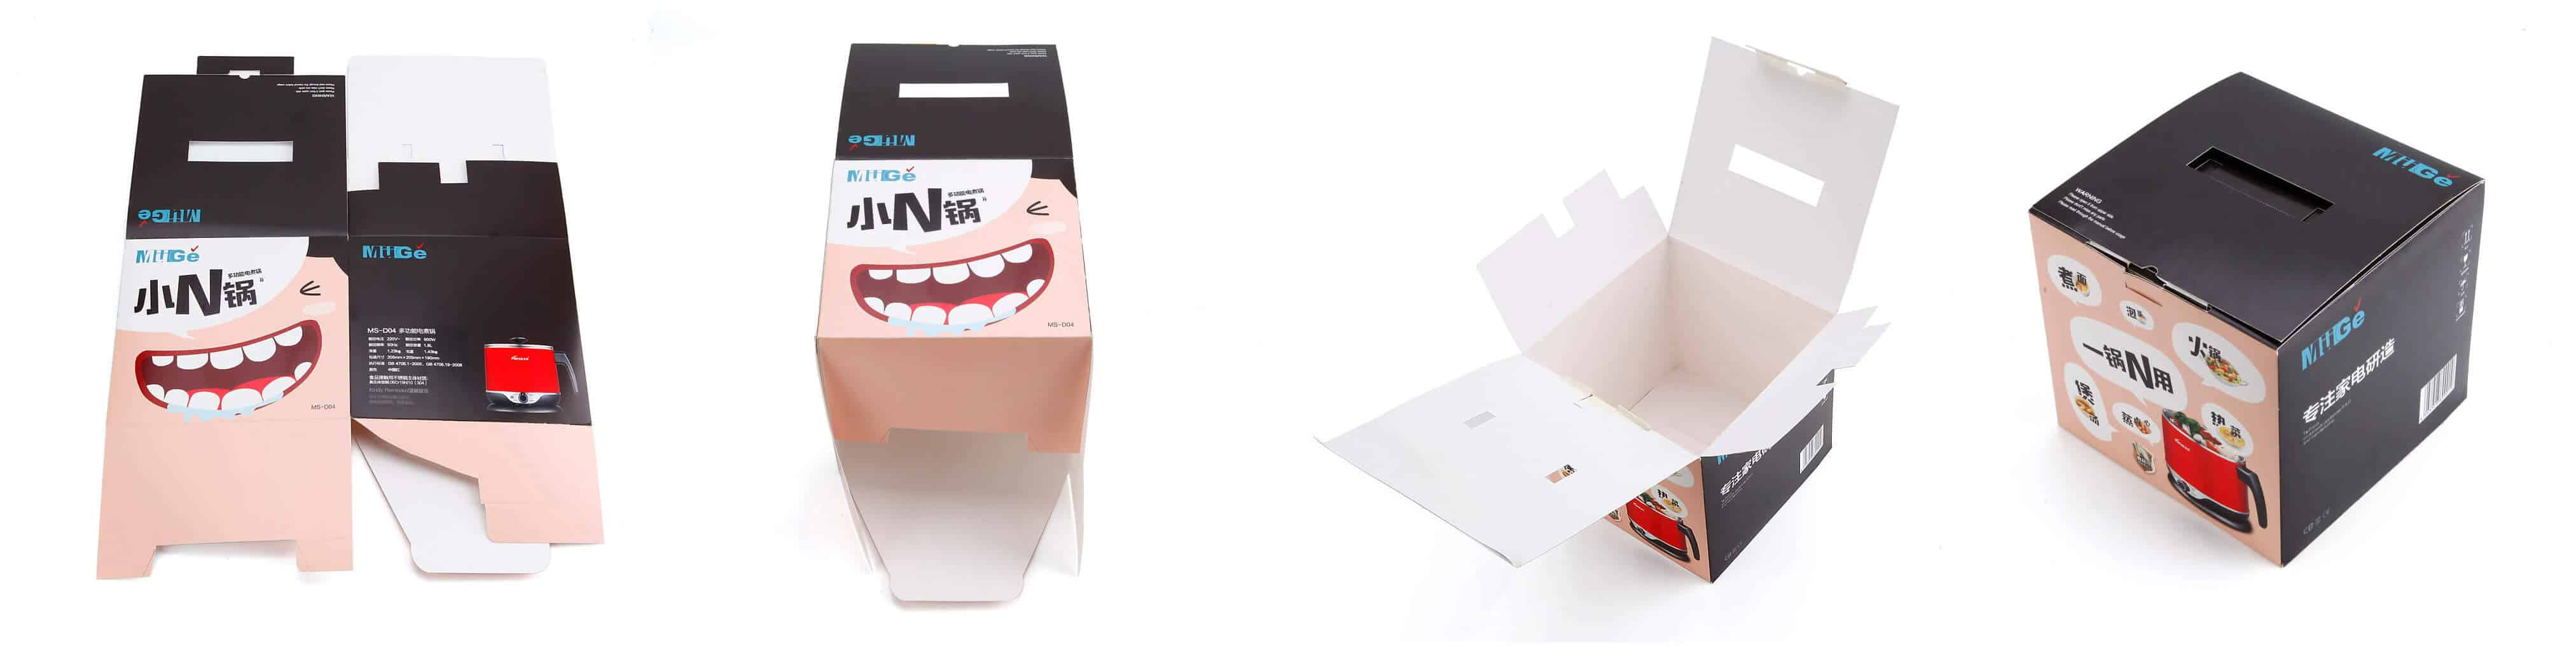 Custom-Electronic-Packaging-Boxes-b